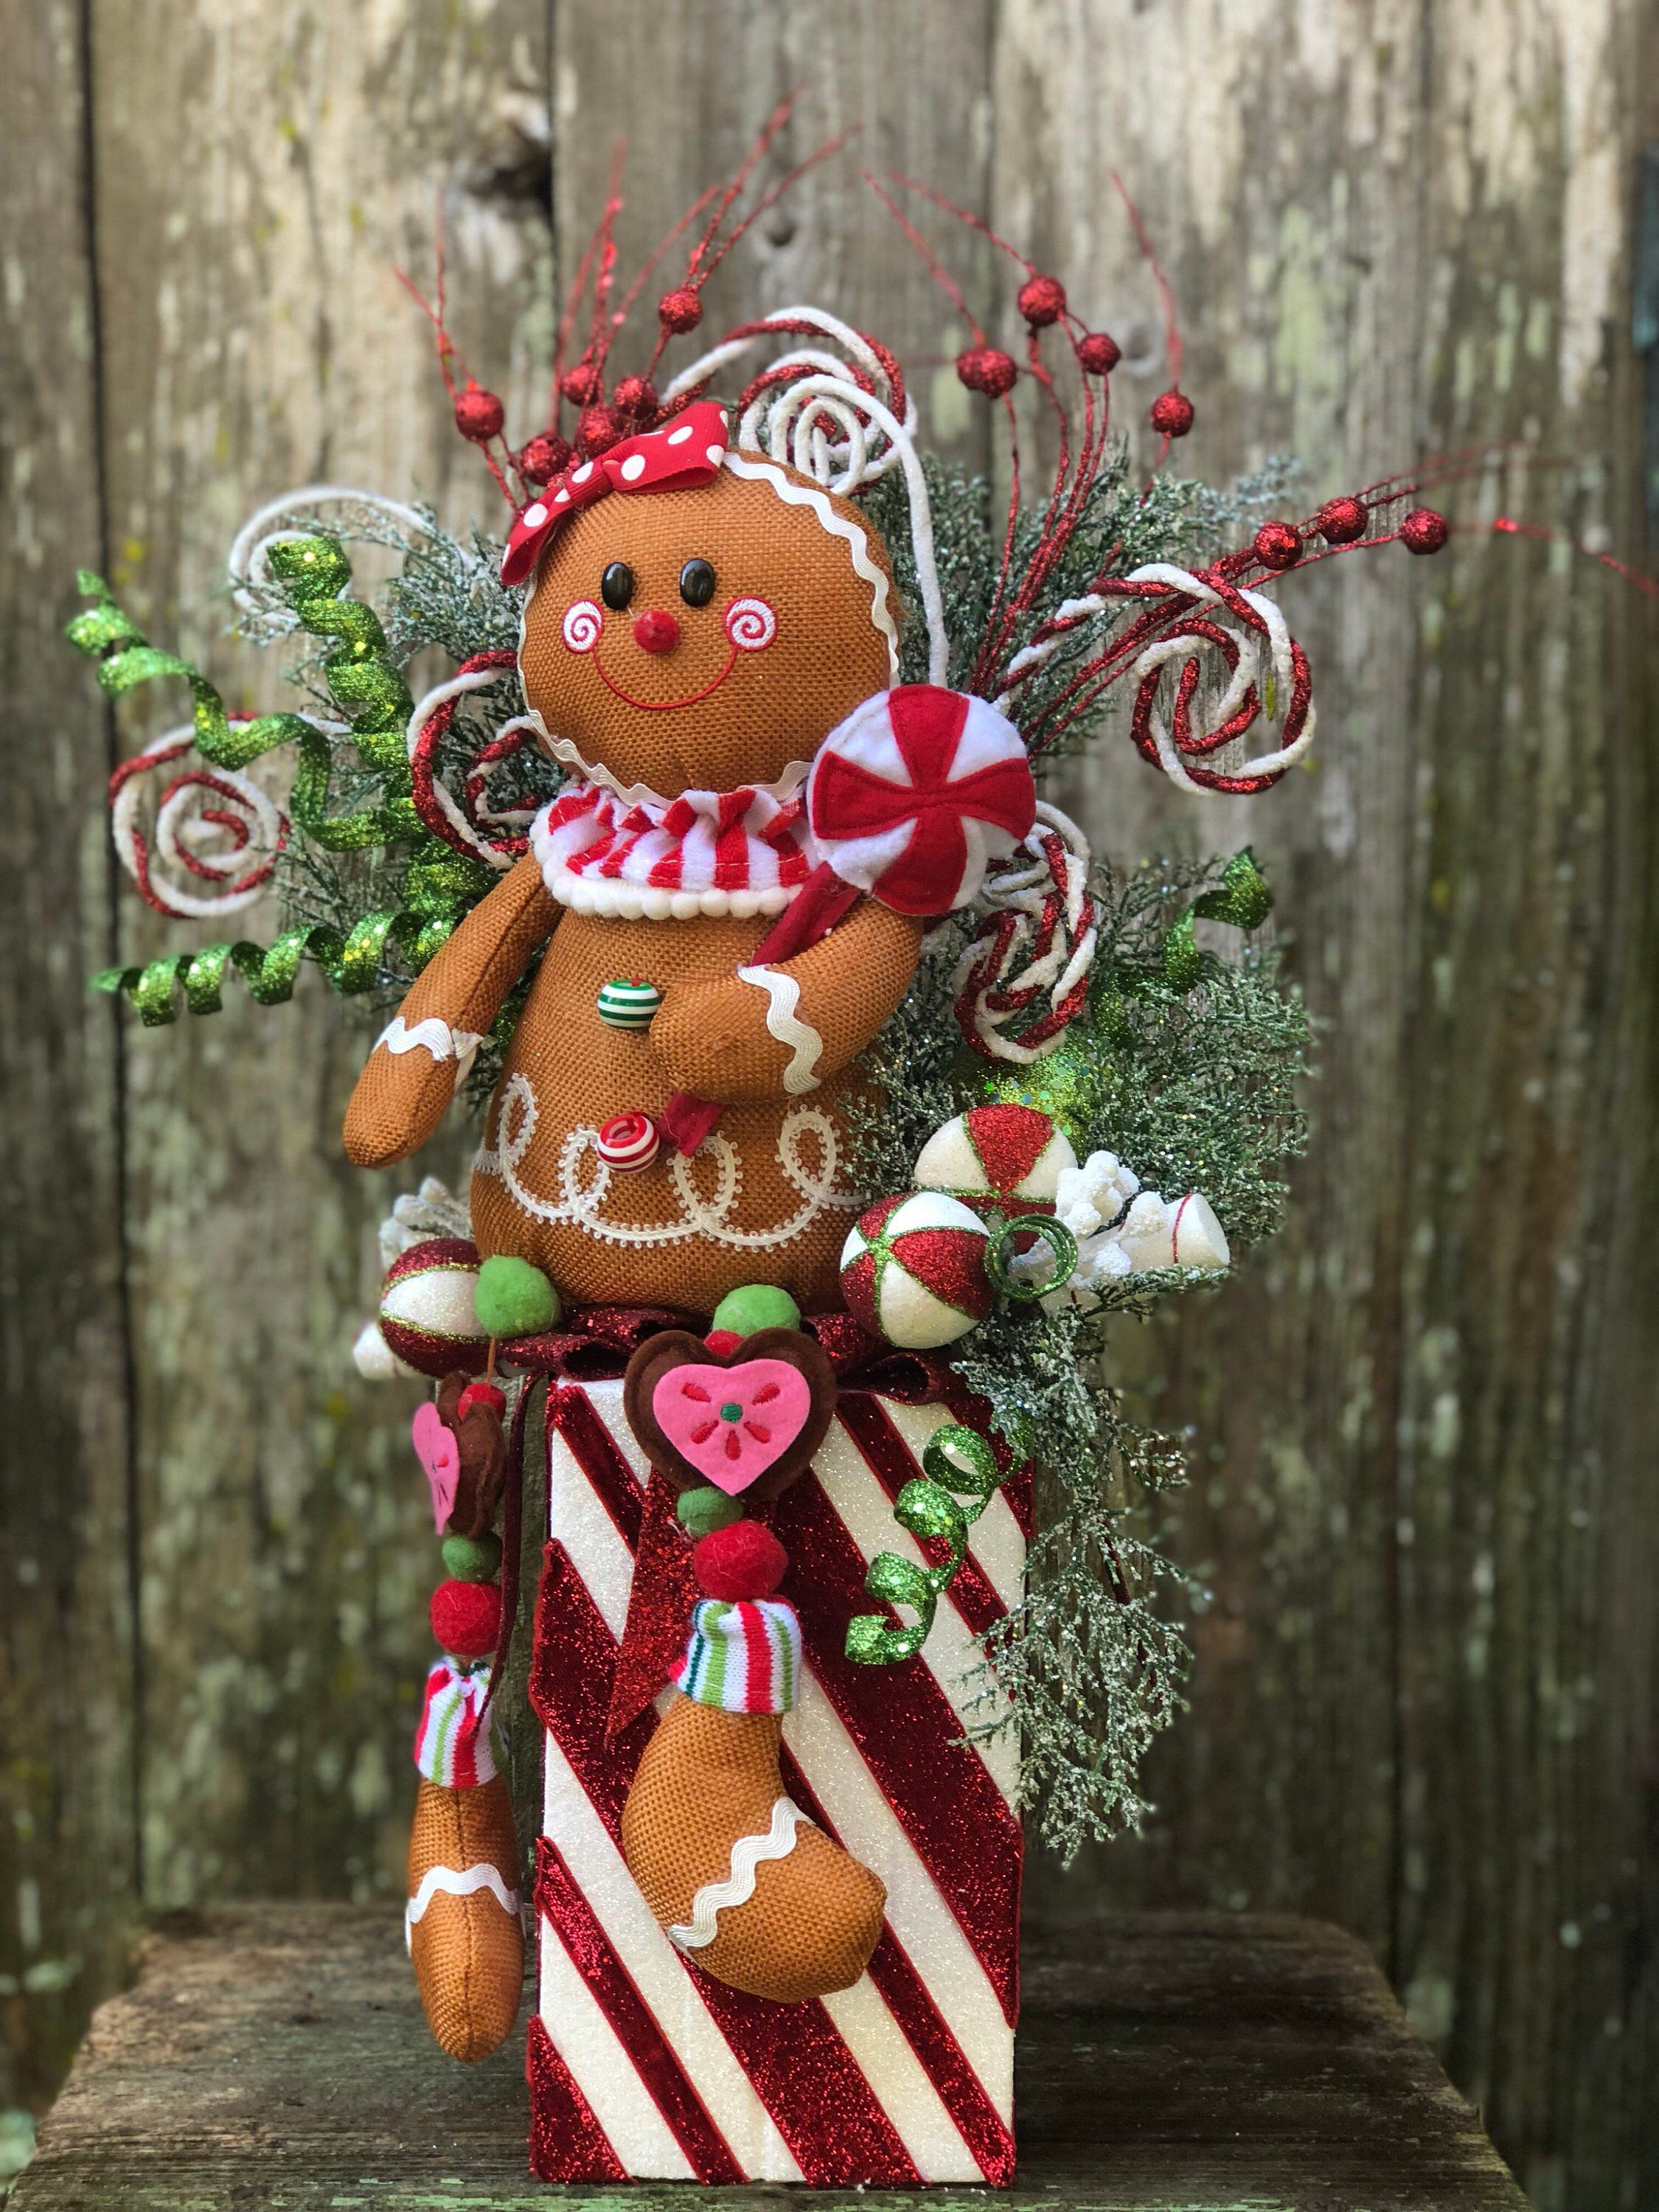 Excited To Share This Item From My Etsy Shop Gingerbread Christmas Arrangement Gingerbread Theme Christmas Arrangements Gingerbread Gifts Christmas Greenery